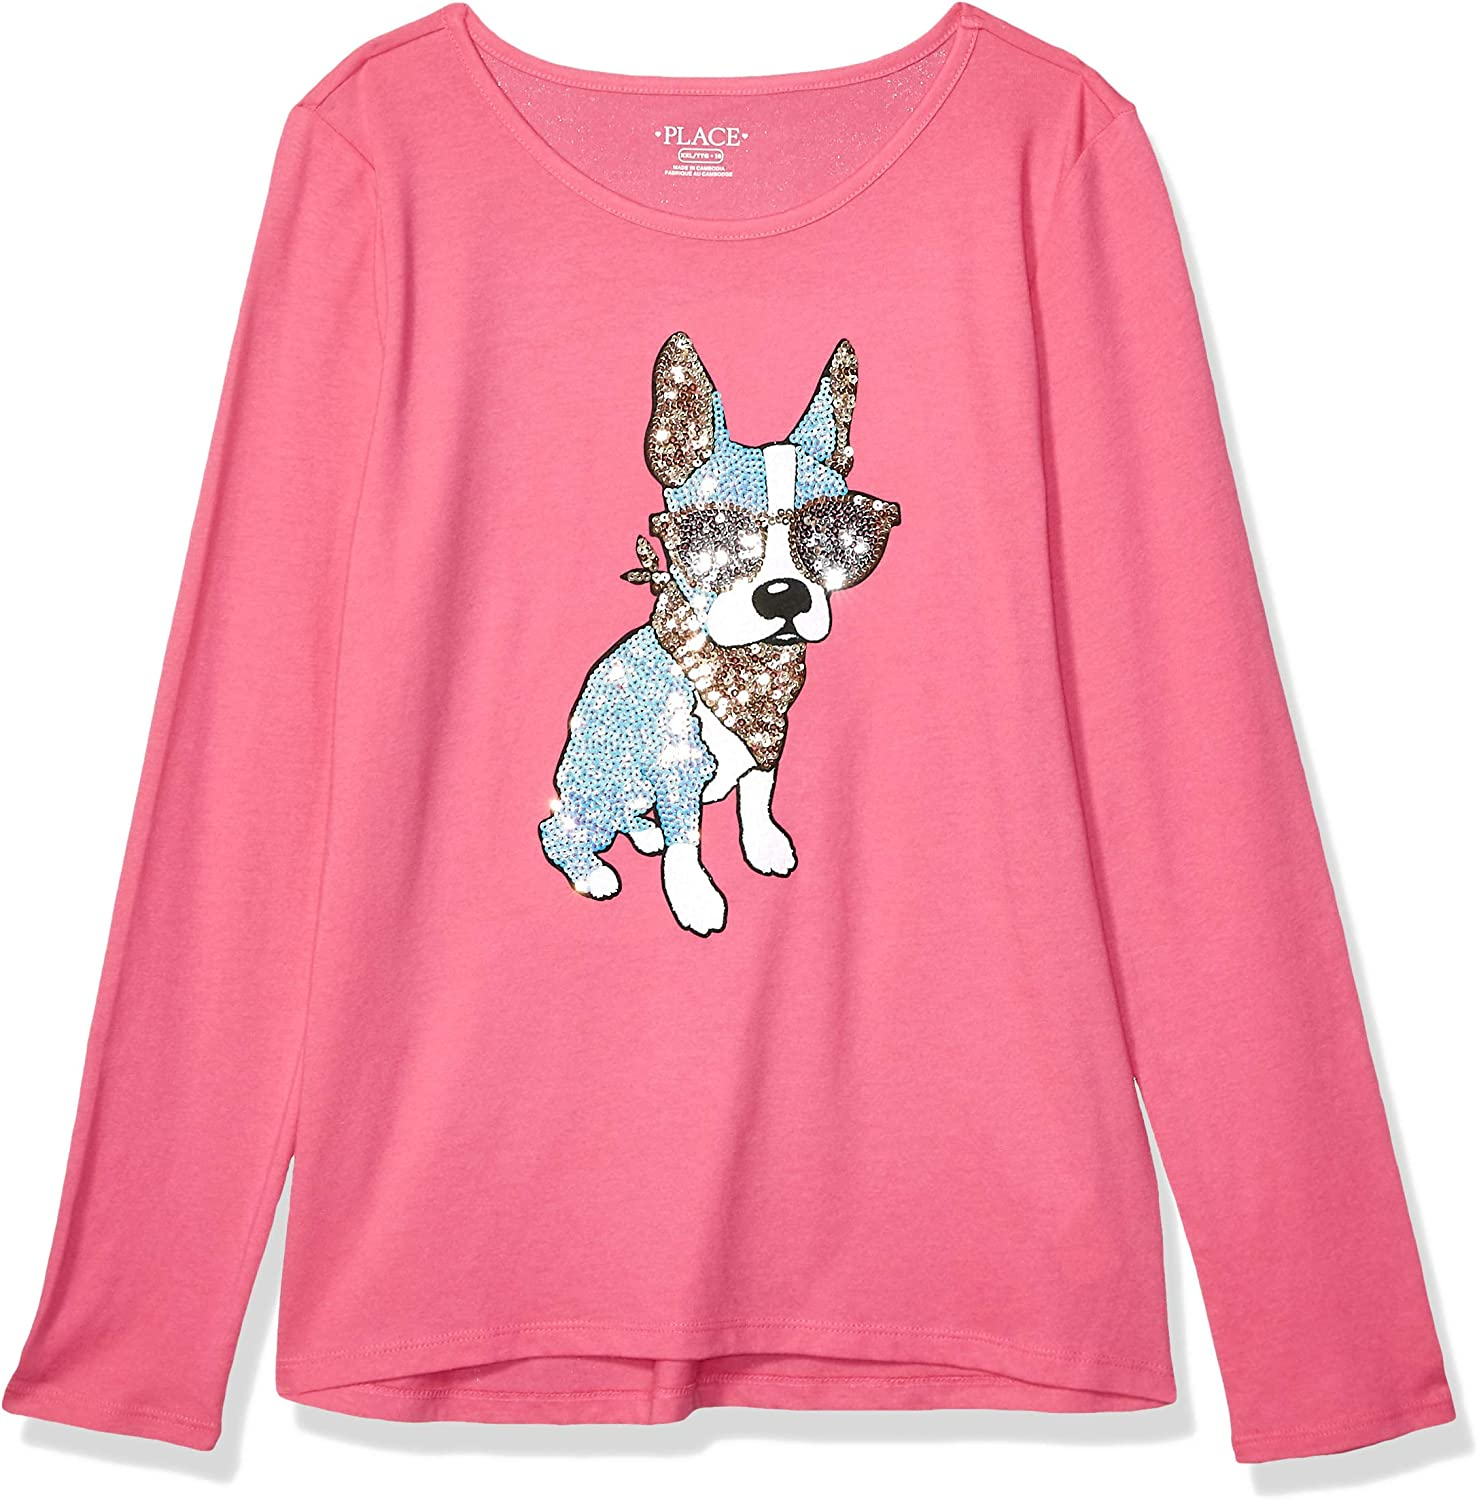 The Children's Place Girls' Big Long Sleeve Graphic Shirt